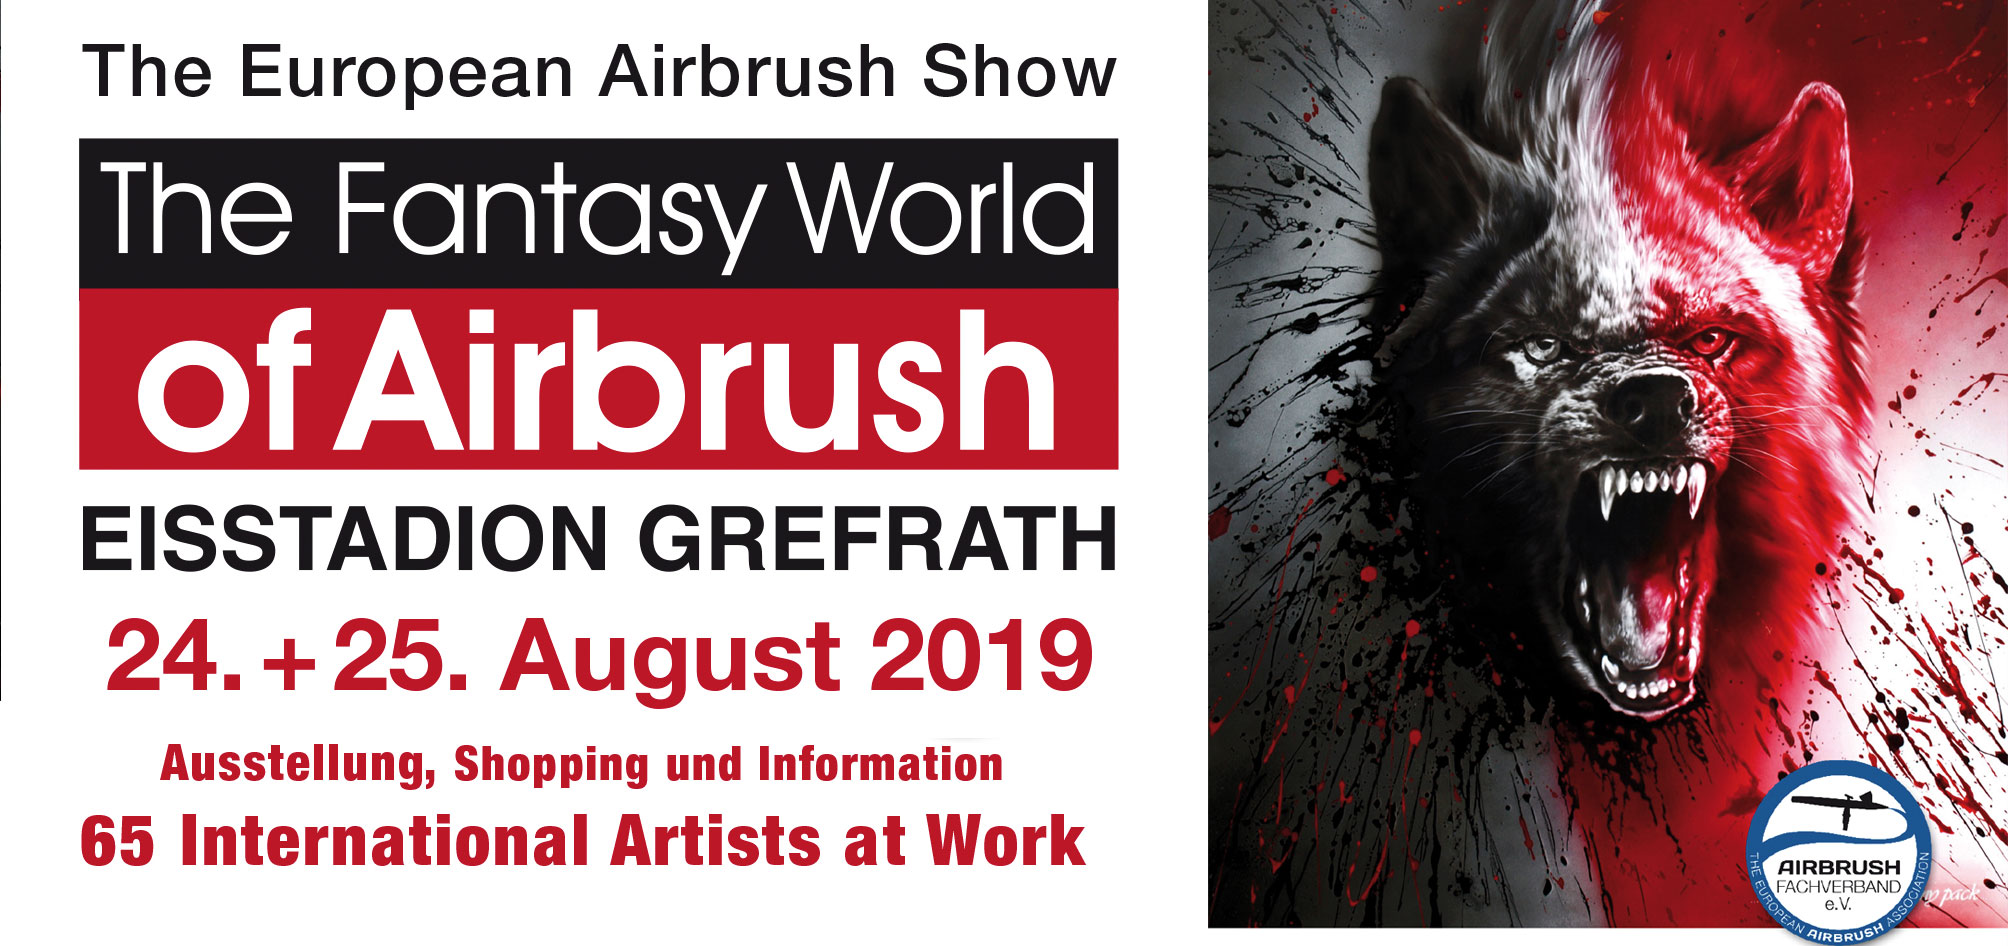 The Fantasy World of Airbrush 2019